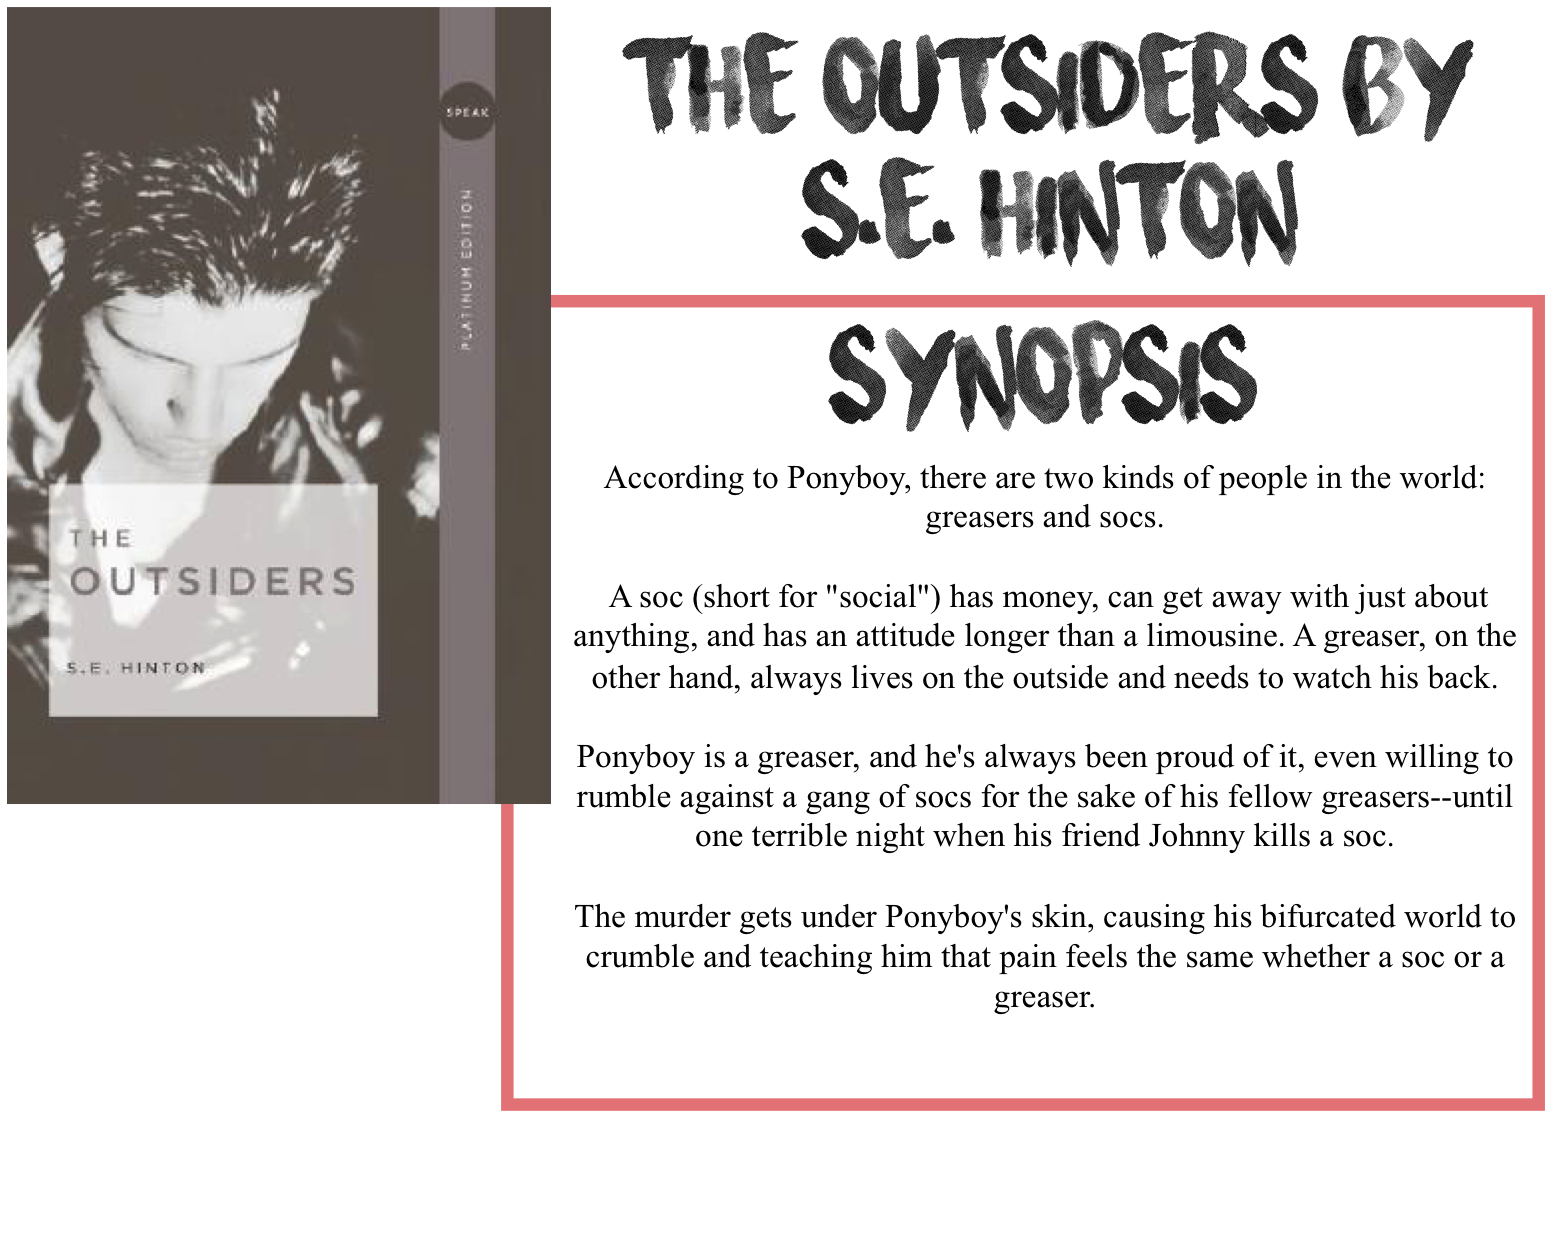 an overview of the novel the outsiders by s e hinton When author ally carter found out that se hinton had been a teenager when she wrote the outsiders, something inside her clicked it was the first moment she realized she could be a writer.